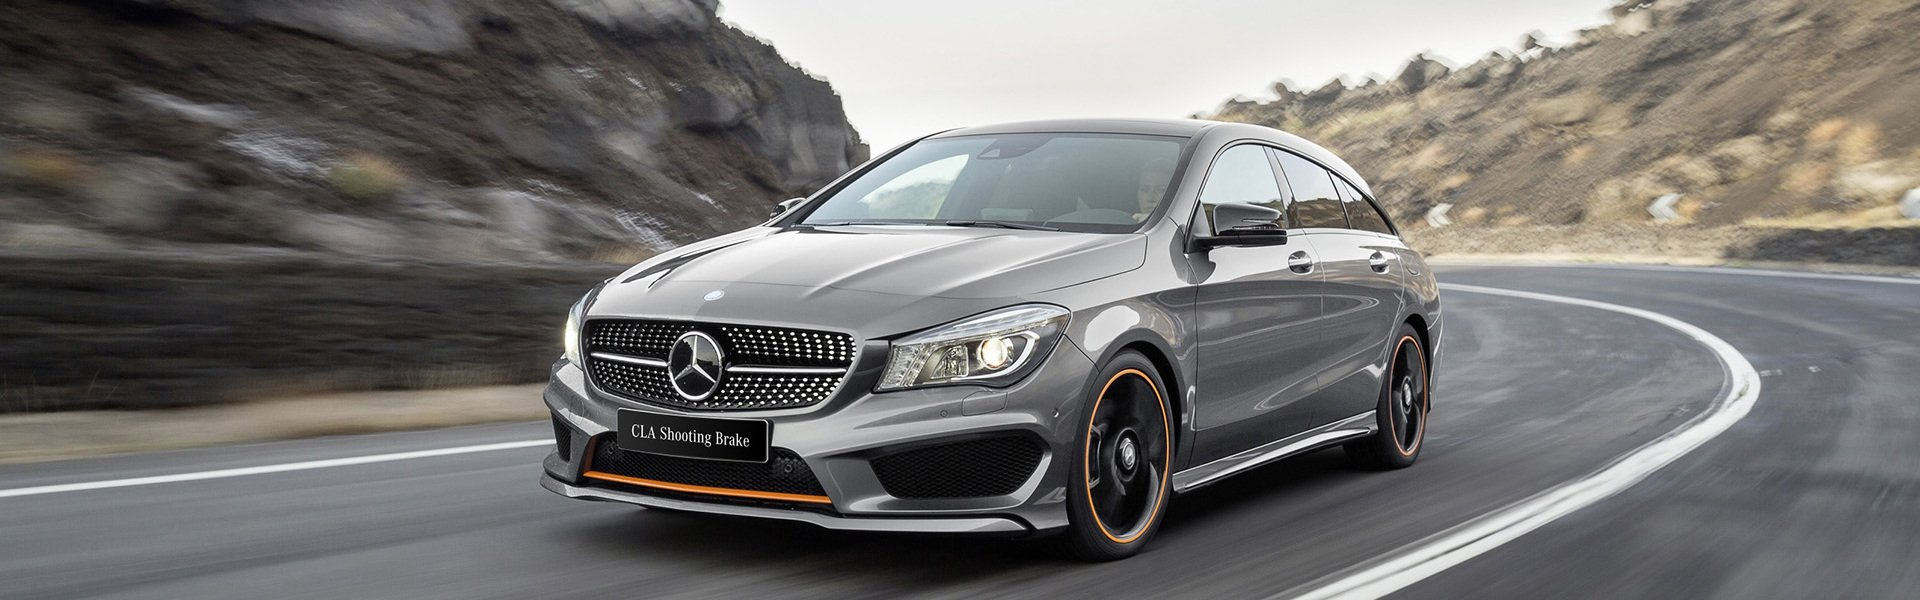 CLA Shooting Brake